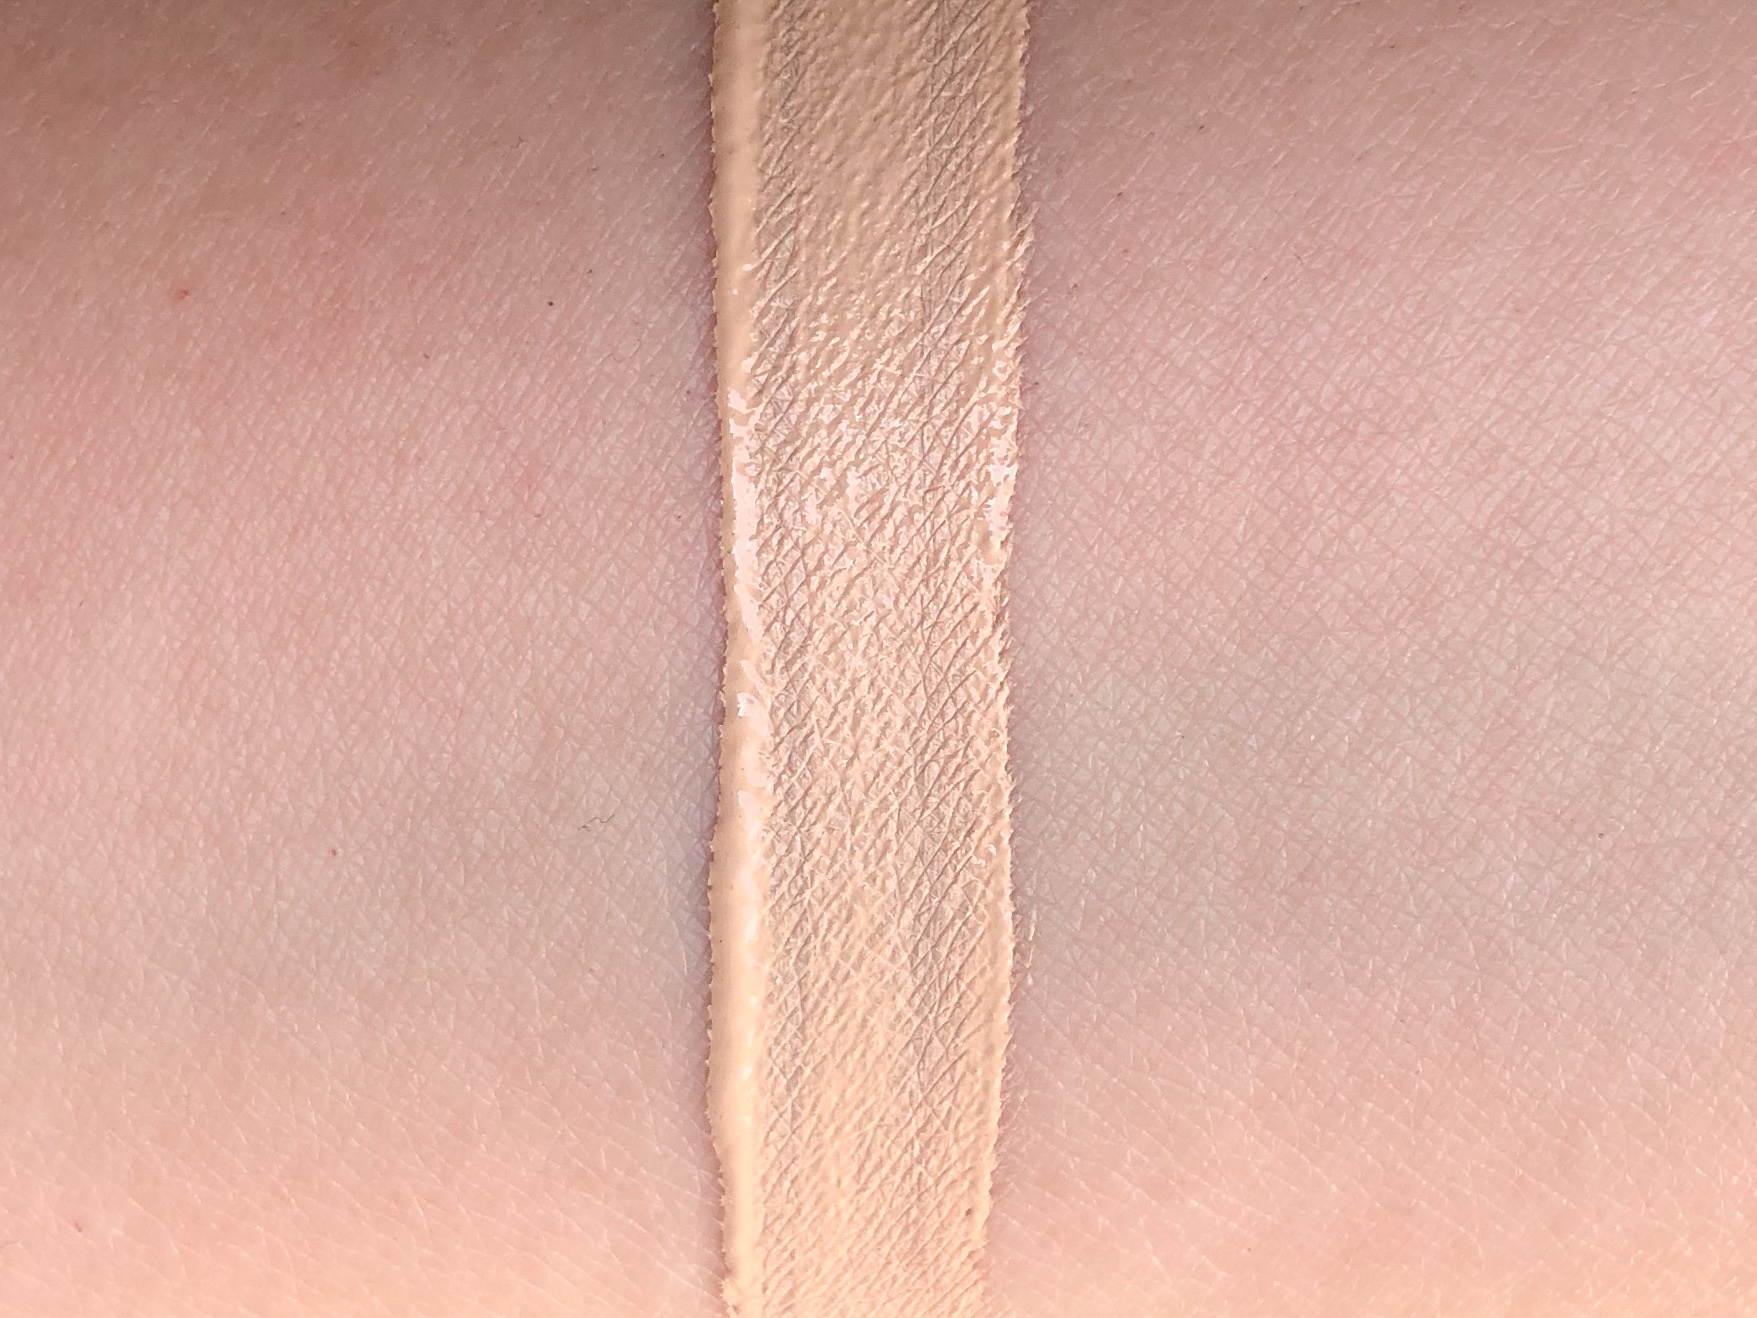 L'Oréal Infaillible More Than Concealer swatch